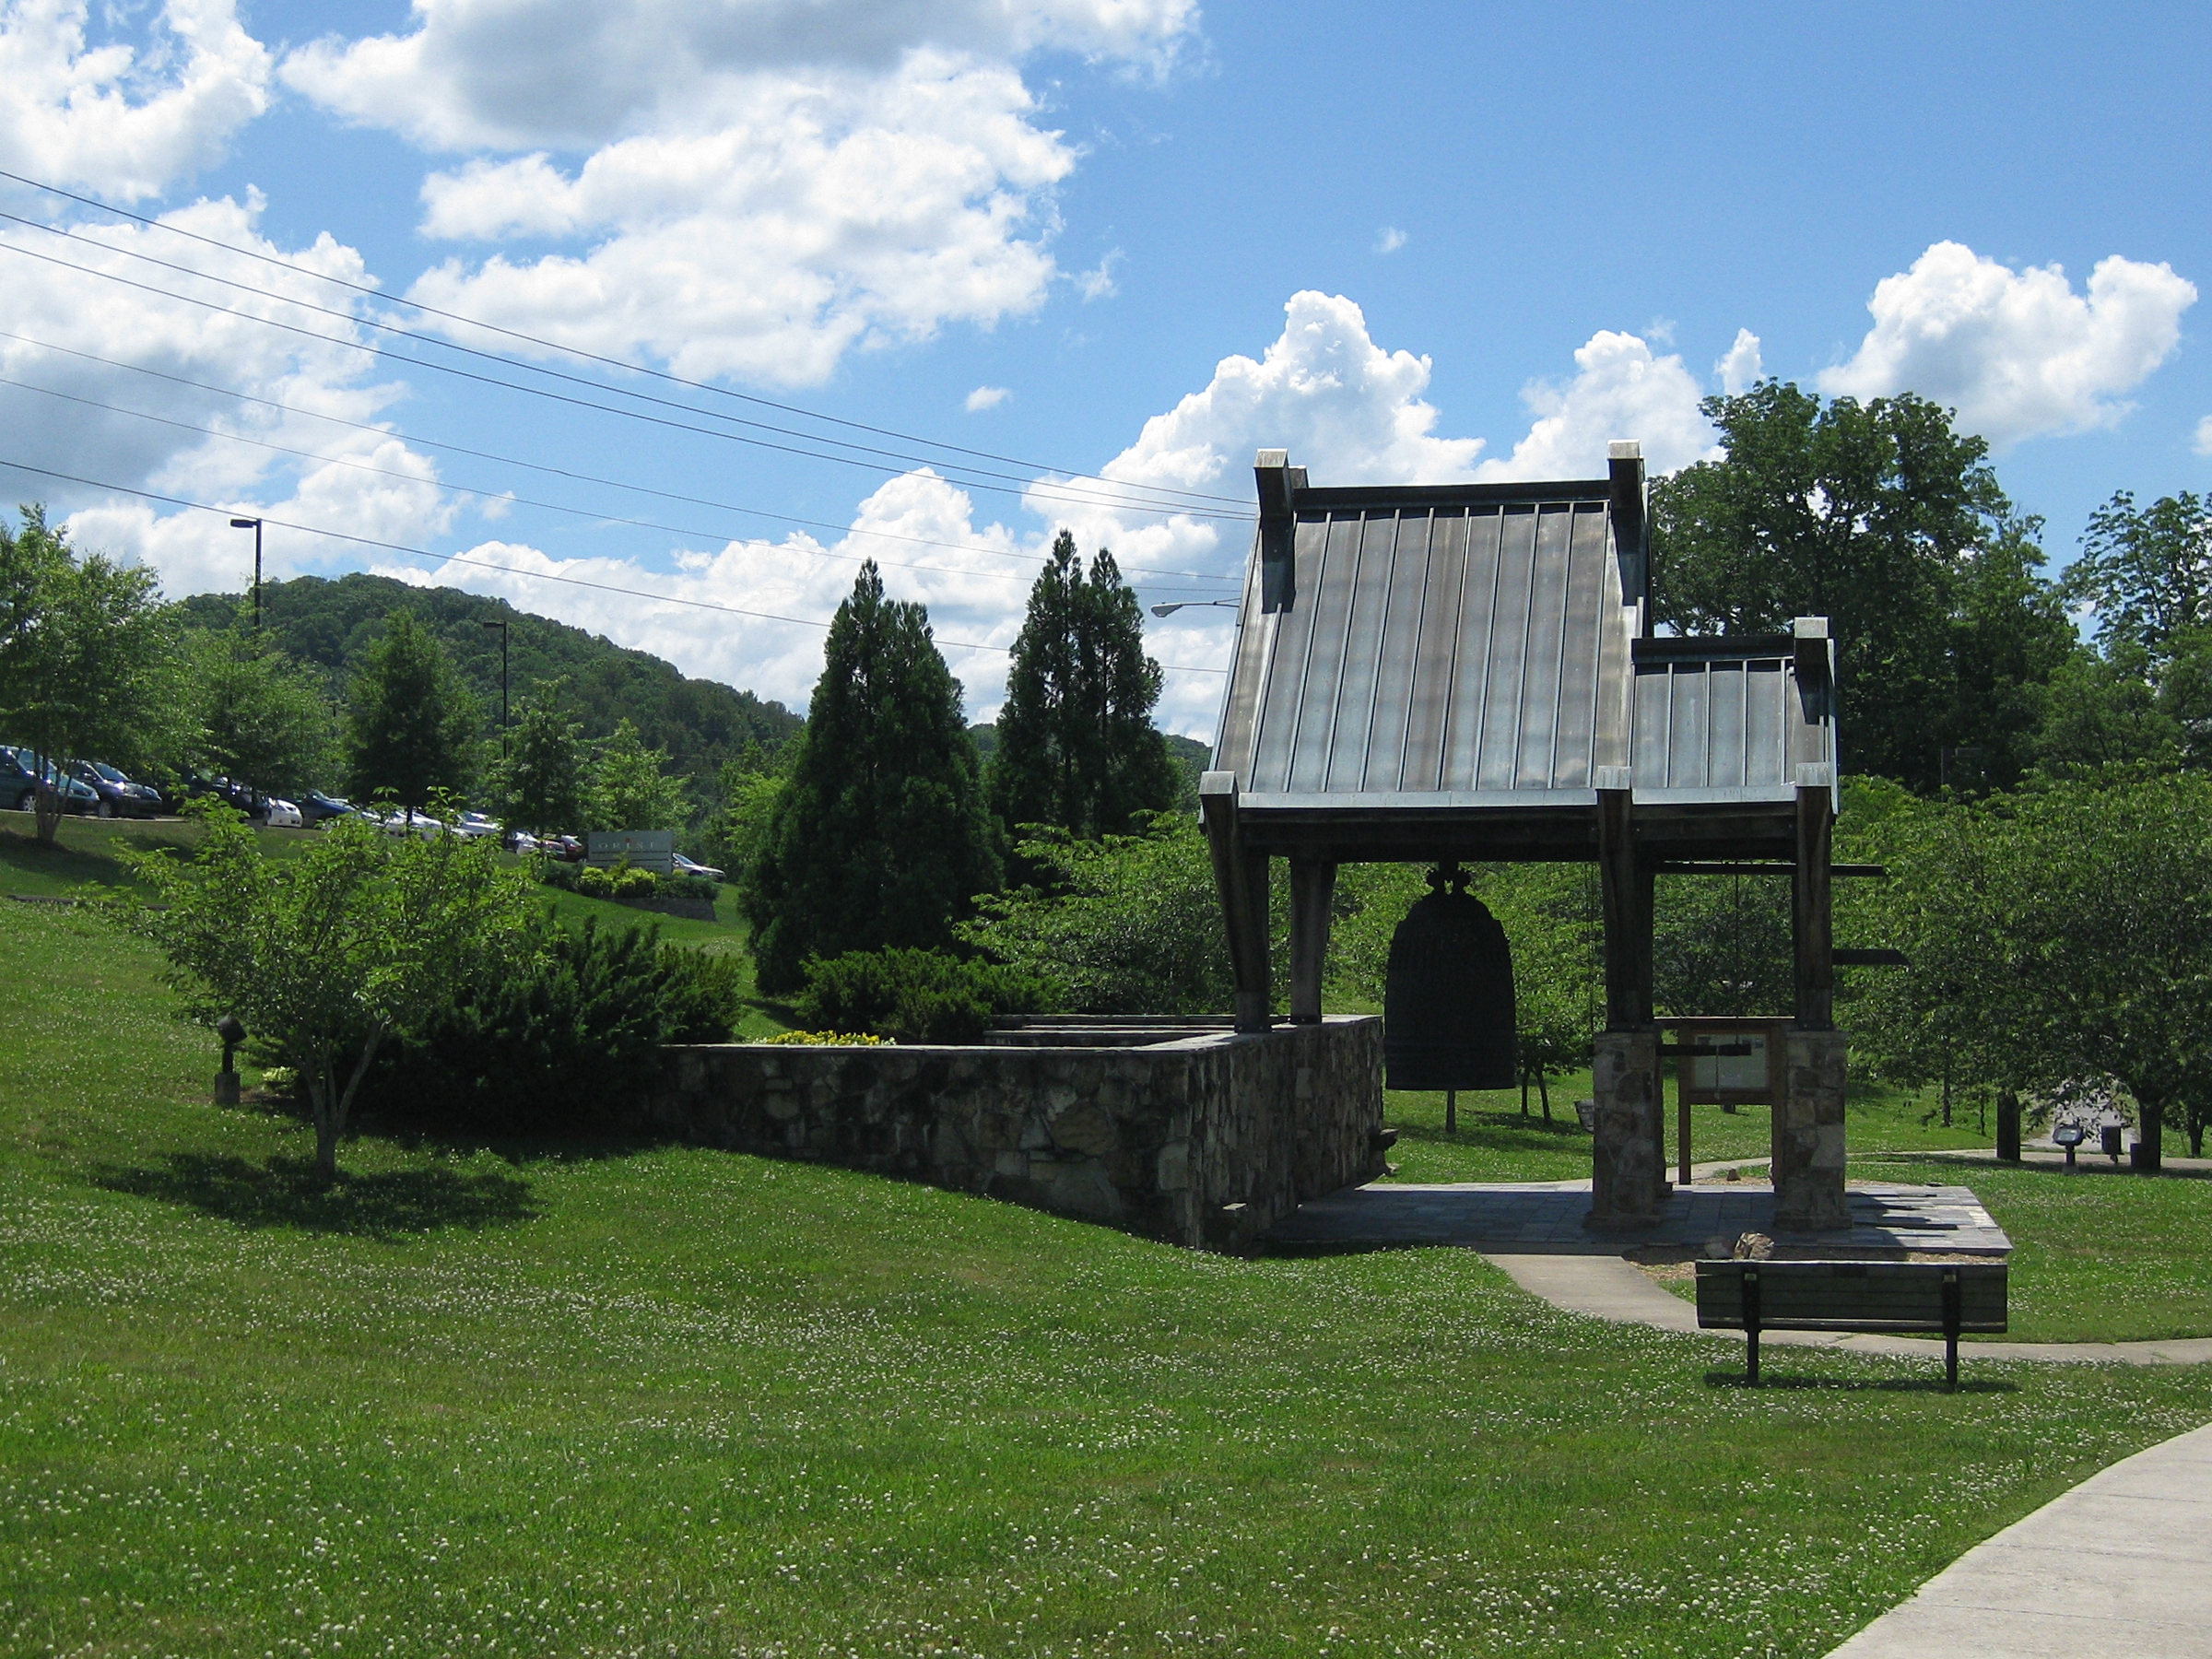 International Friendship Bell. Photo Courtesy of Wikimedia Commons, Douglas Perkins